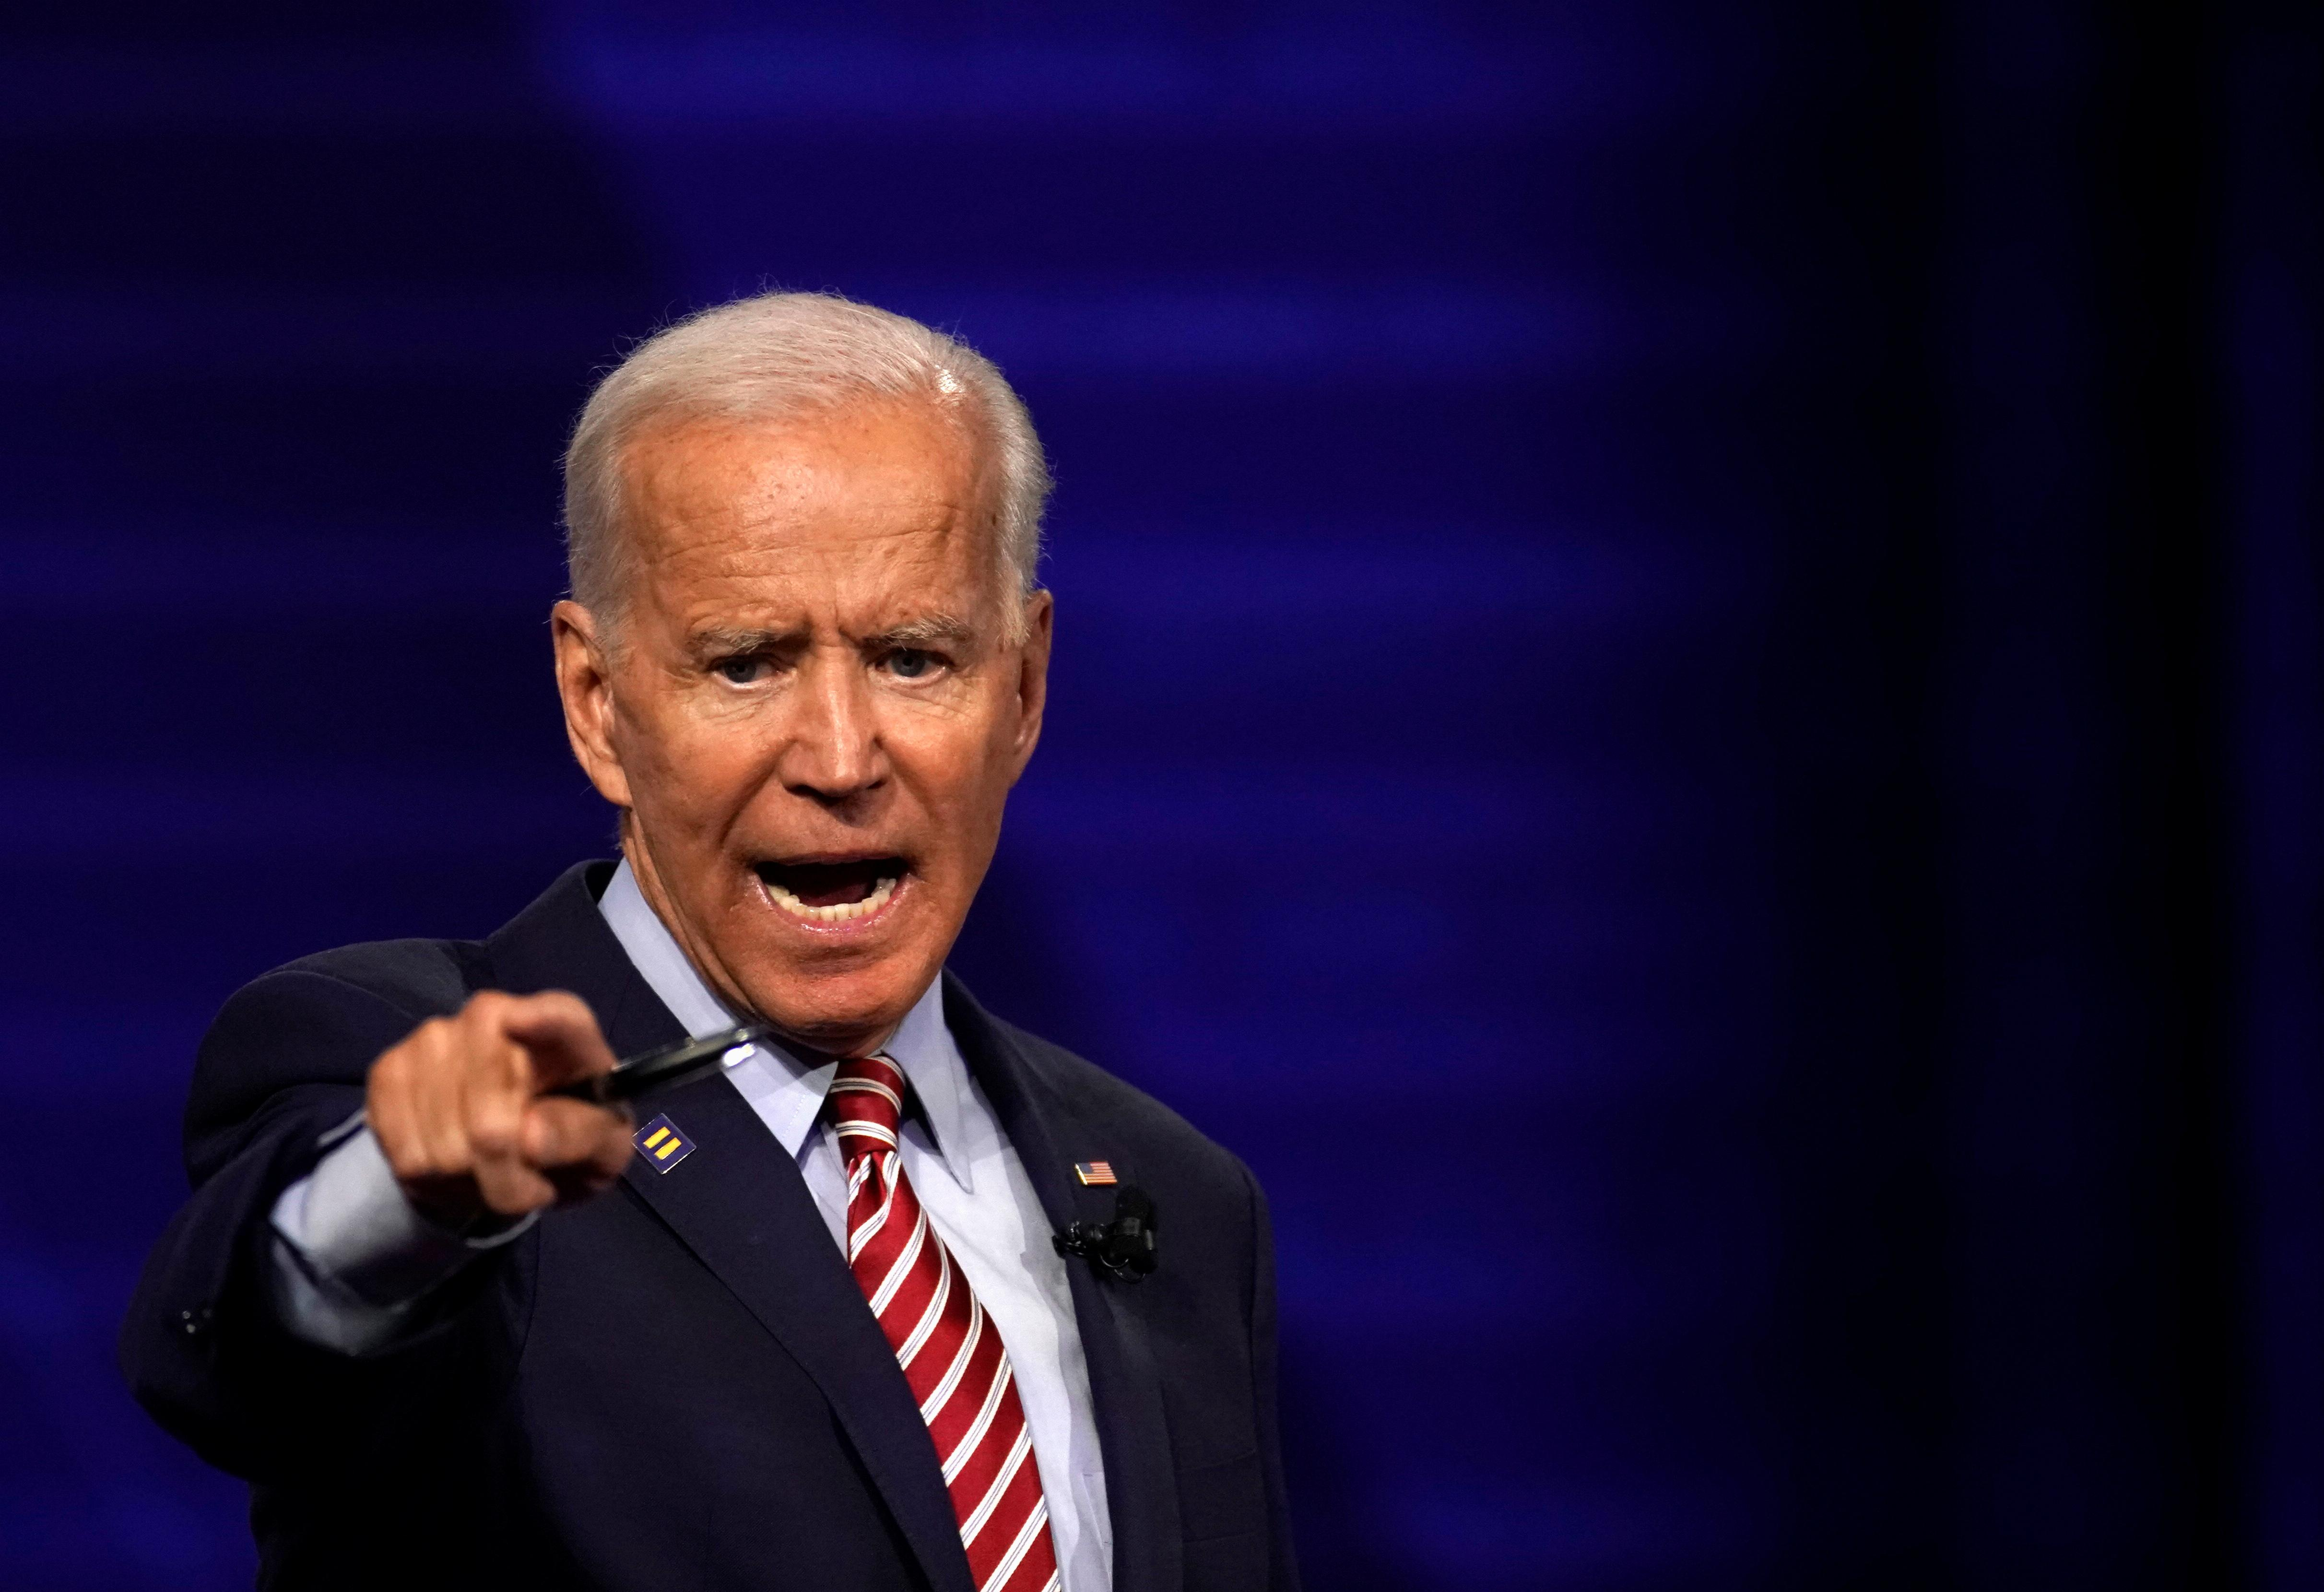 Biden says he would withhold foreign aid if countries discriminate...